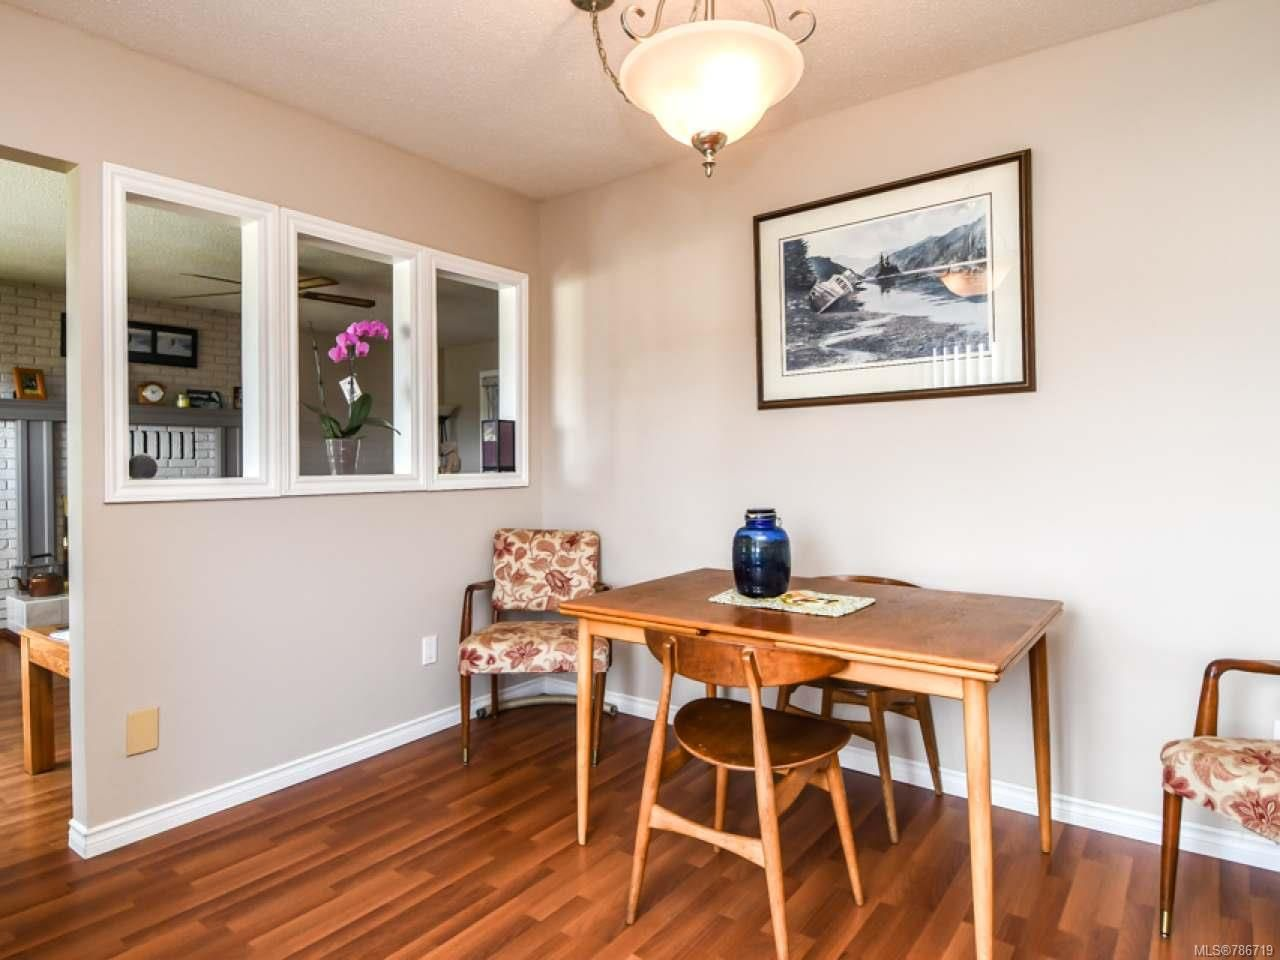 Photo 19: Photos: 1234 Denis Rd in CAMPBELL RIVER: CR Campbell River Central House for sale (Campbell River)  : MLS®# 786719